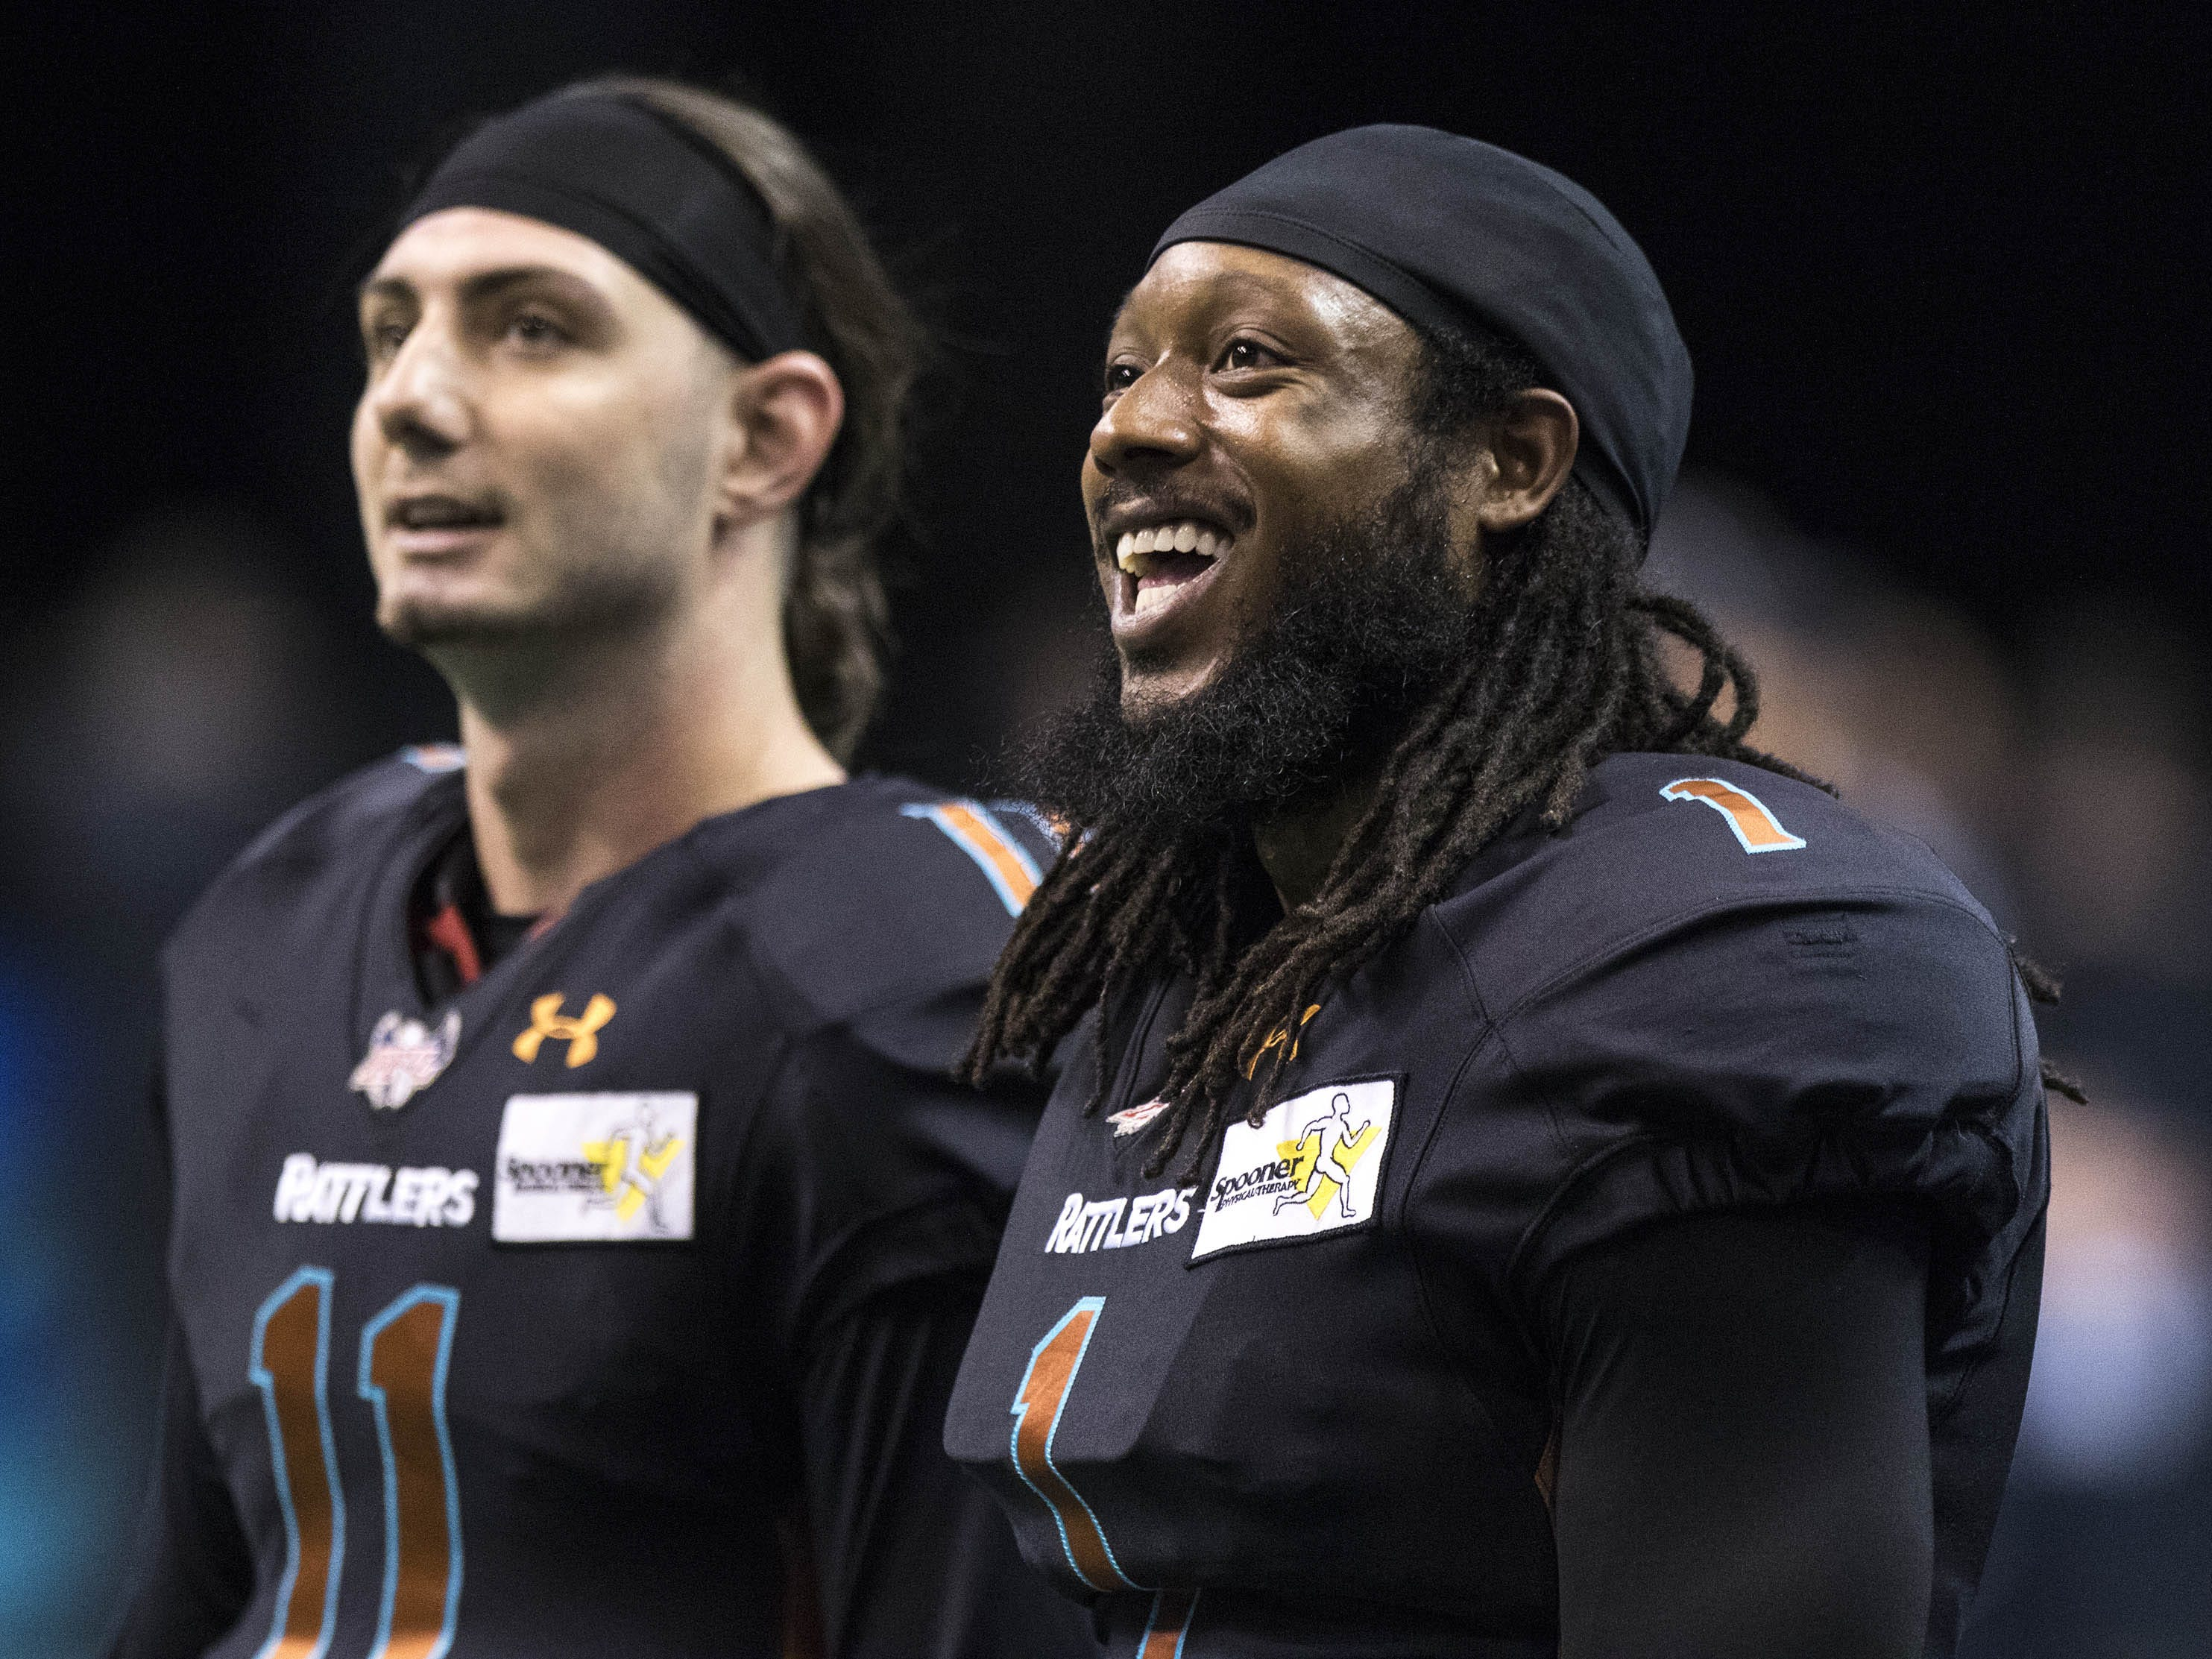 Arizona Rattlers' quarterbacks Jeff Ziemba (11) Verlon Reed Jr. (1) enjoy a laugh before their game against Cedar Rapids River Kings at Talking Stick Resort Arena in Phoenix, Sunday, March 3, 2019.